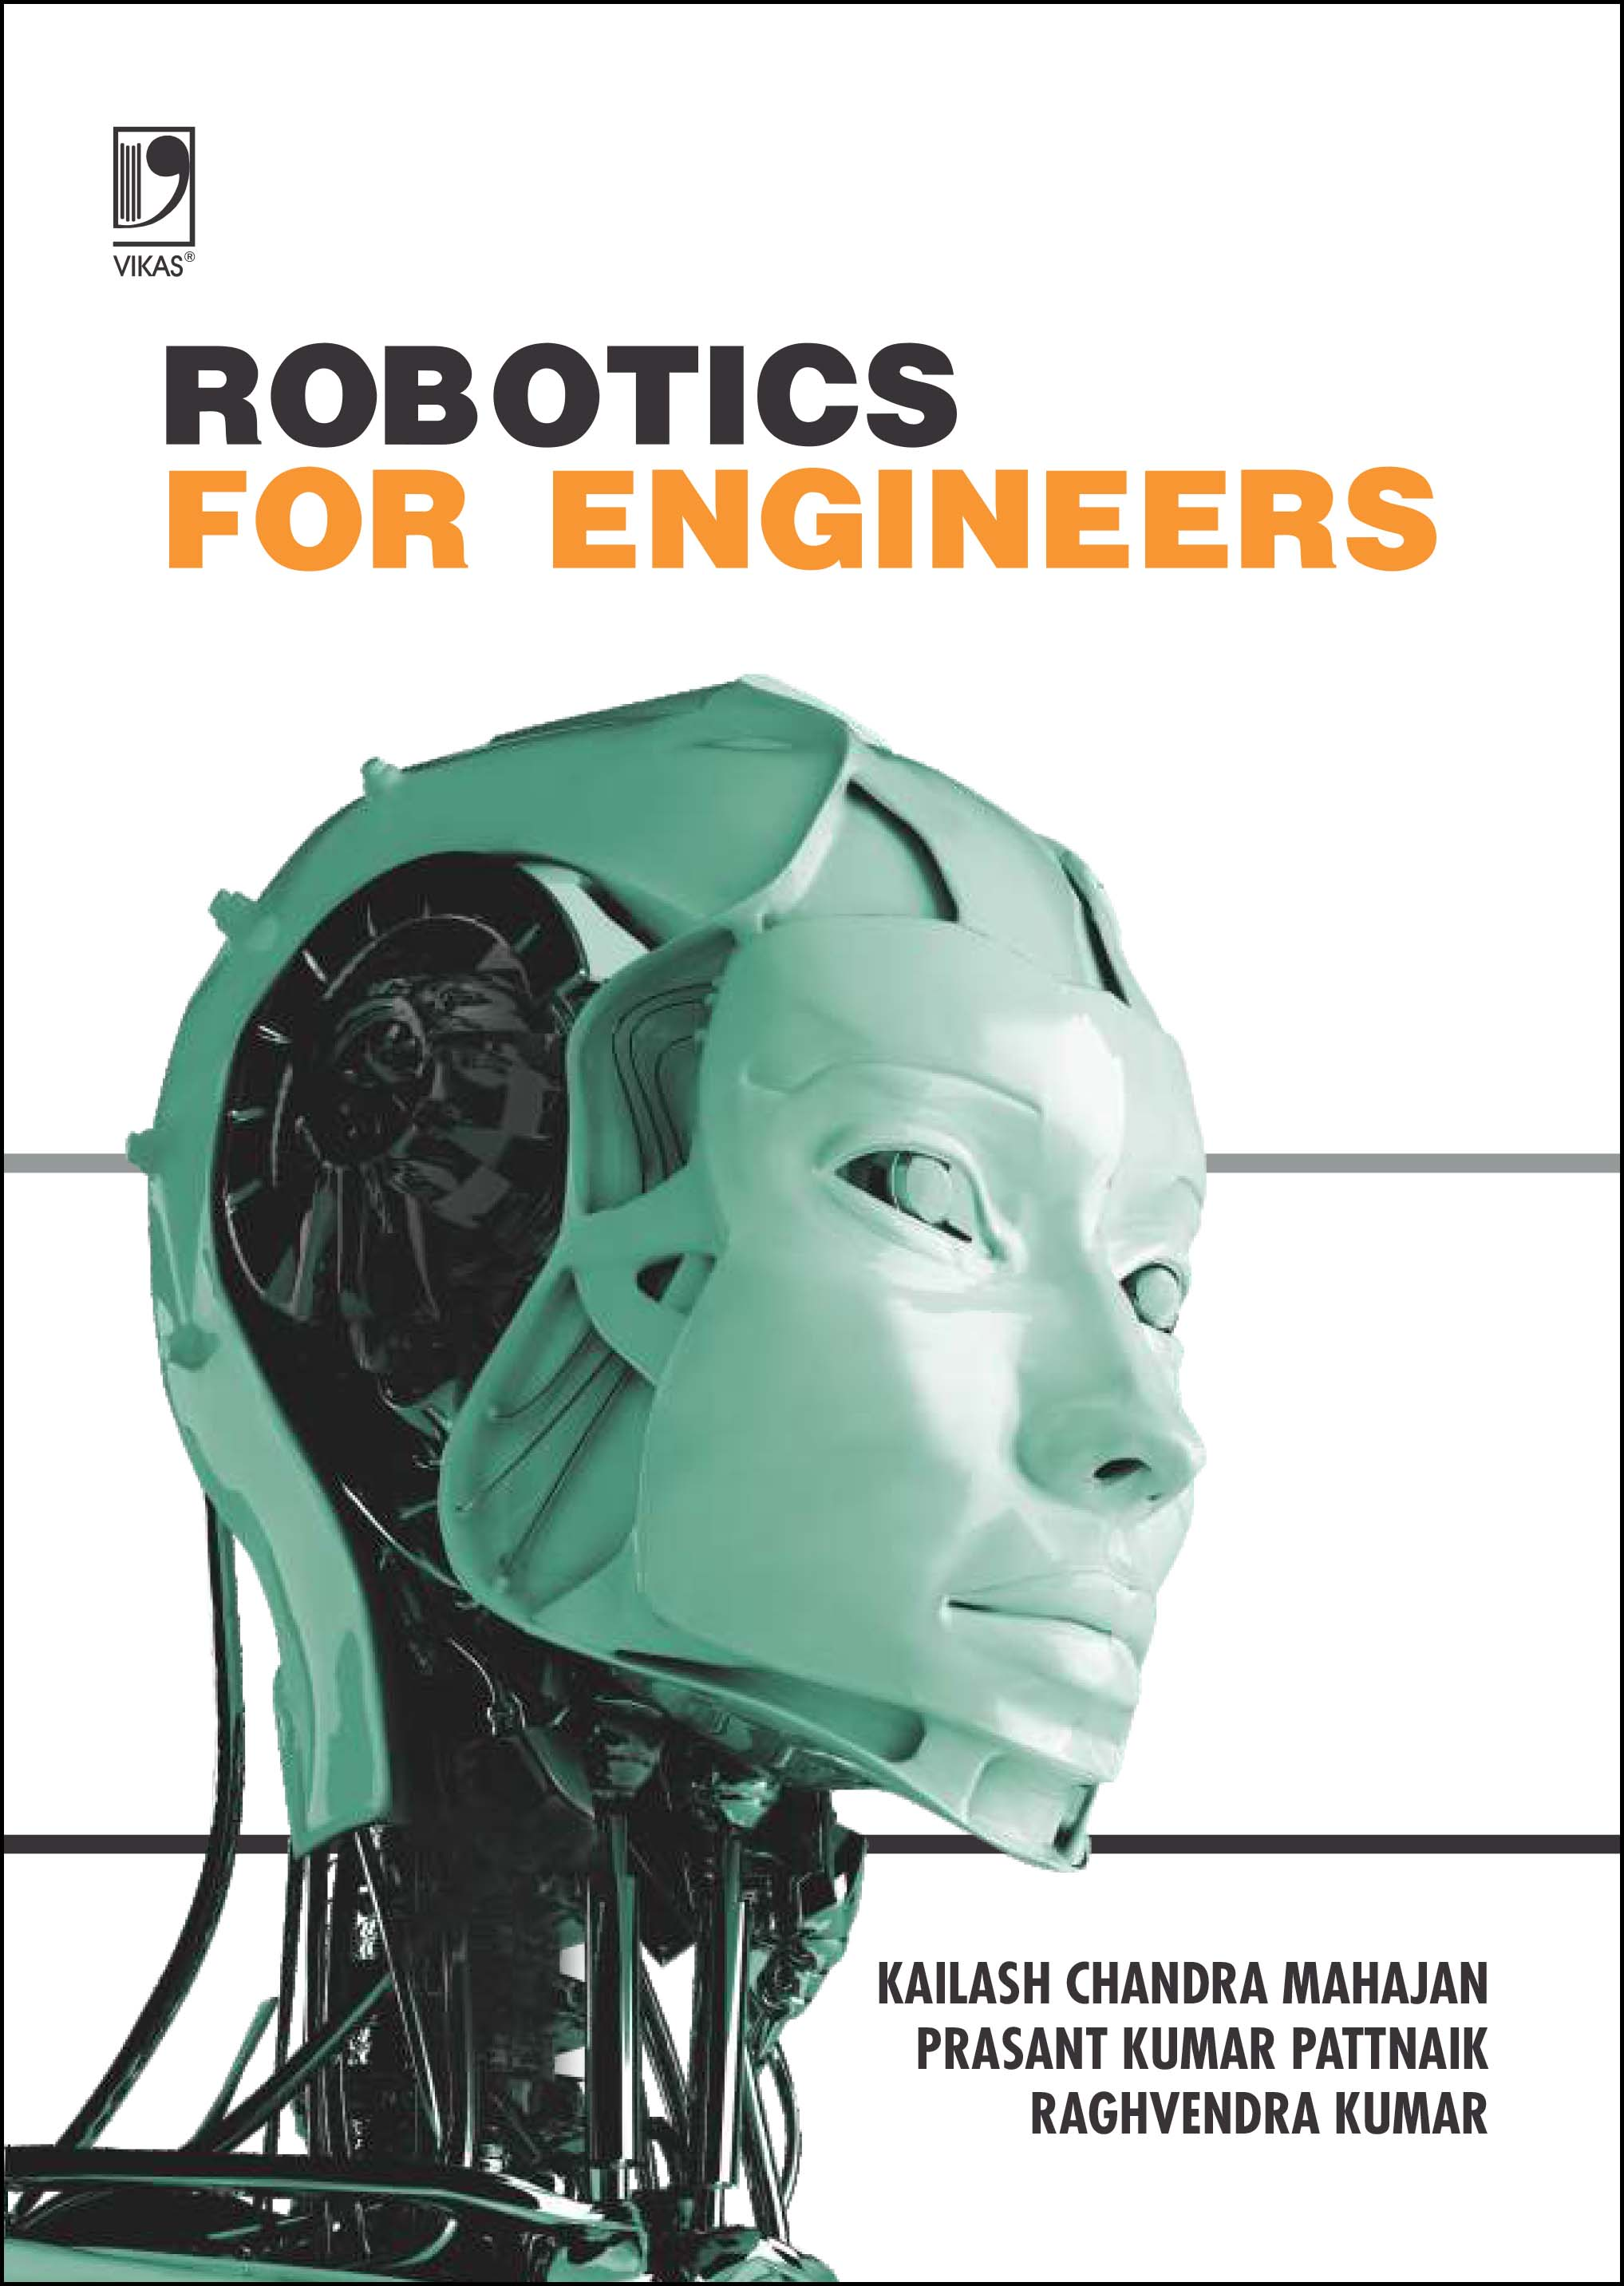 Robotics for Engineers - Concepts and Techniques by  KAILASH CHANDRA MAHAJAN